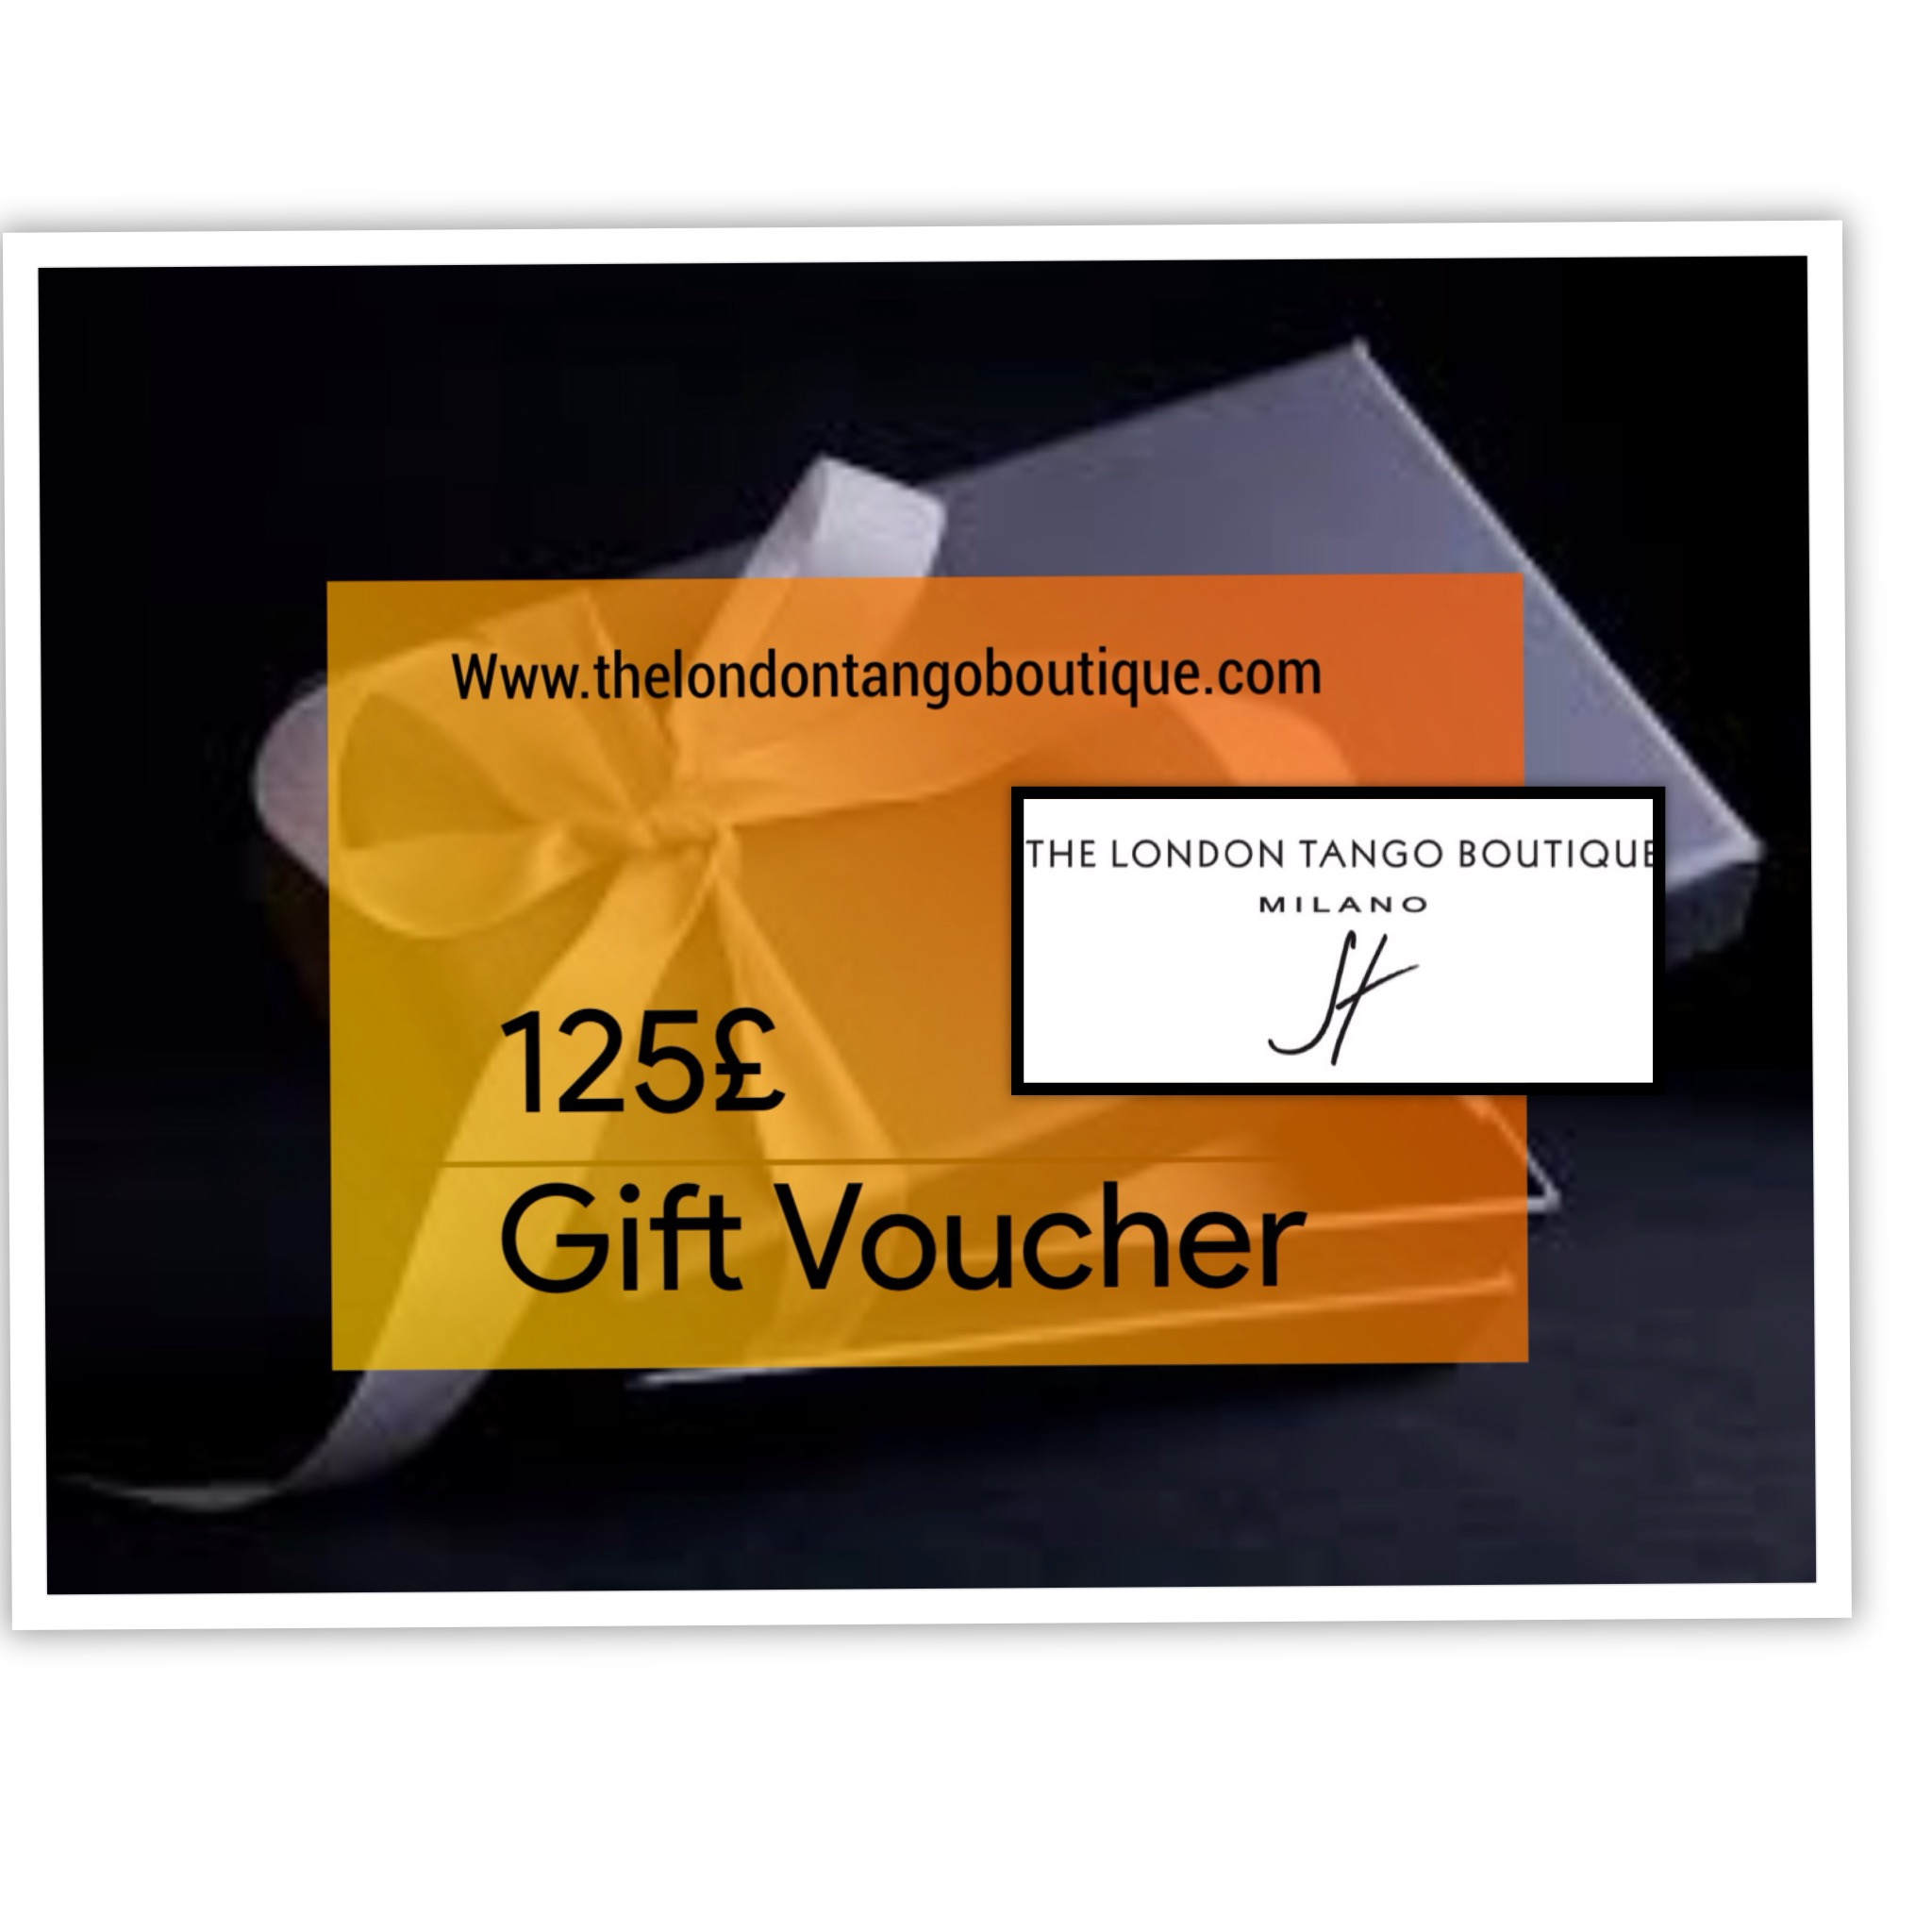 Tango dress gift voucher